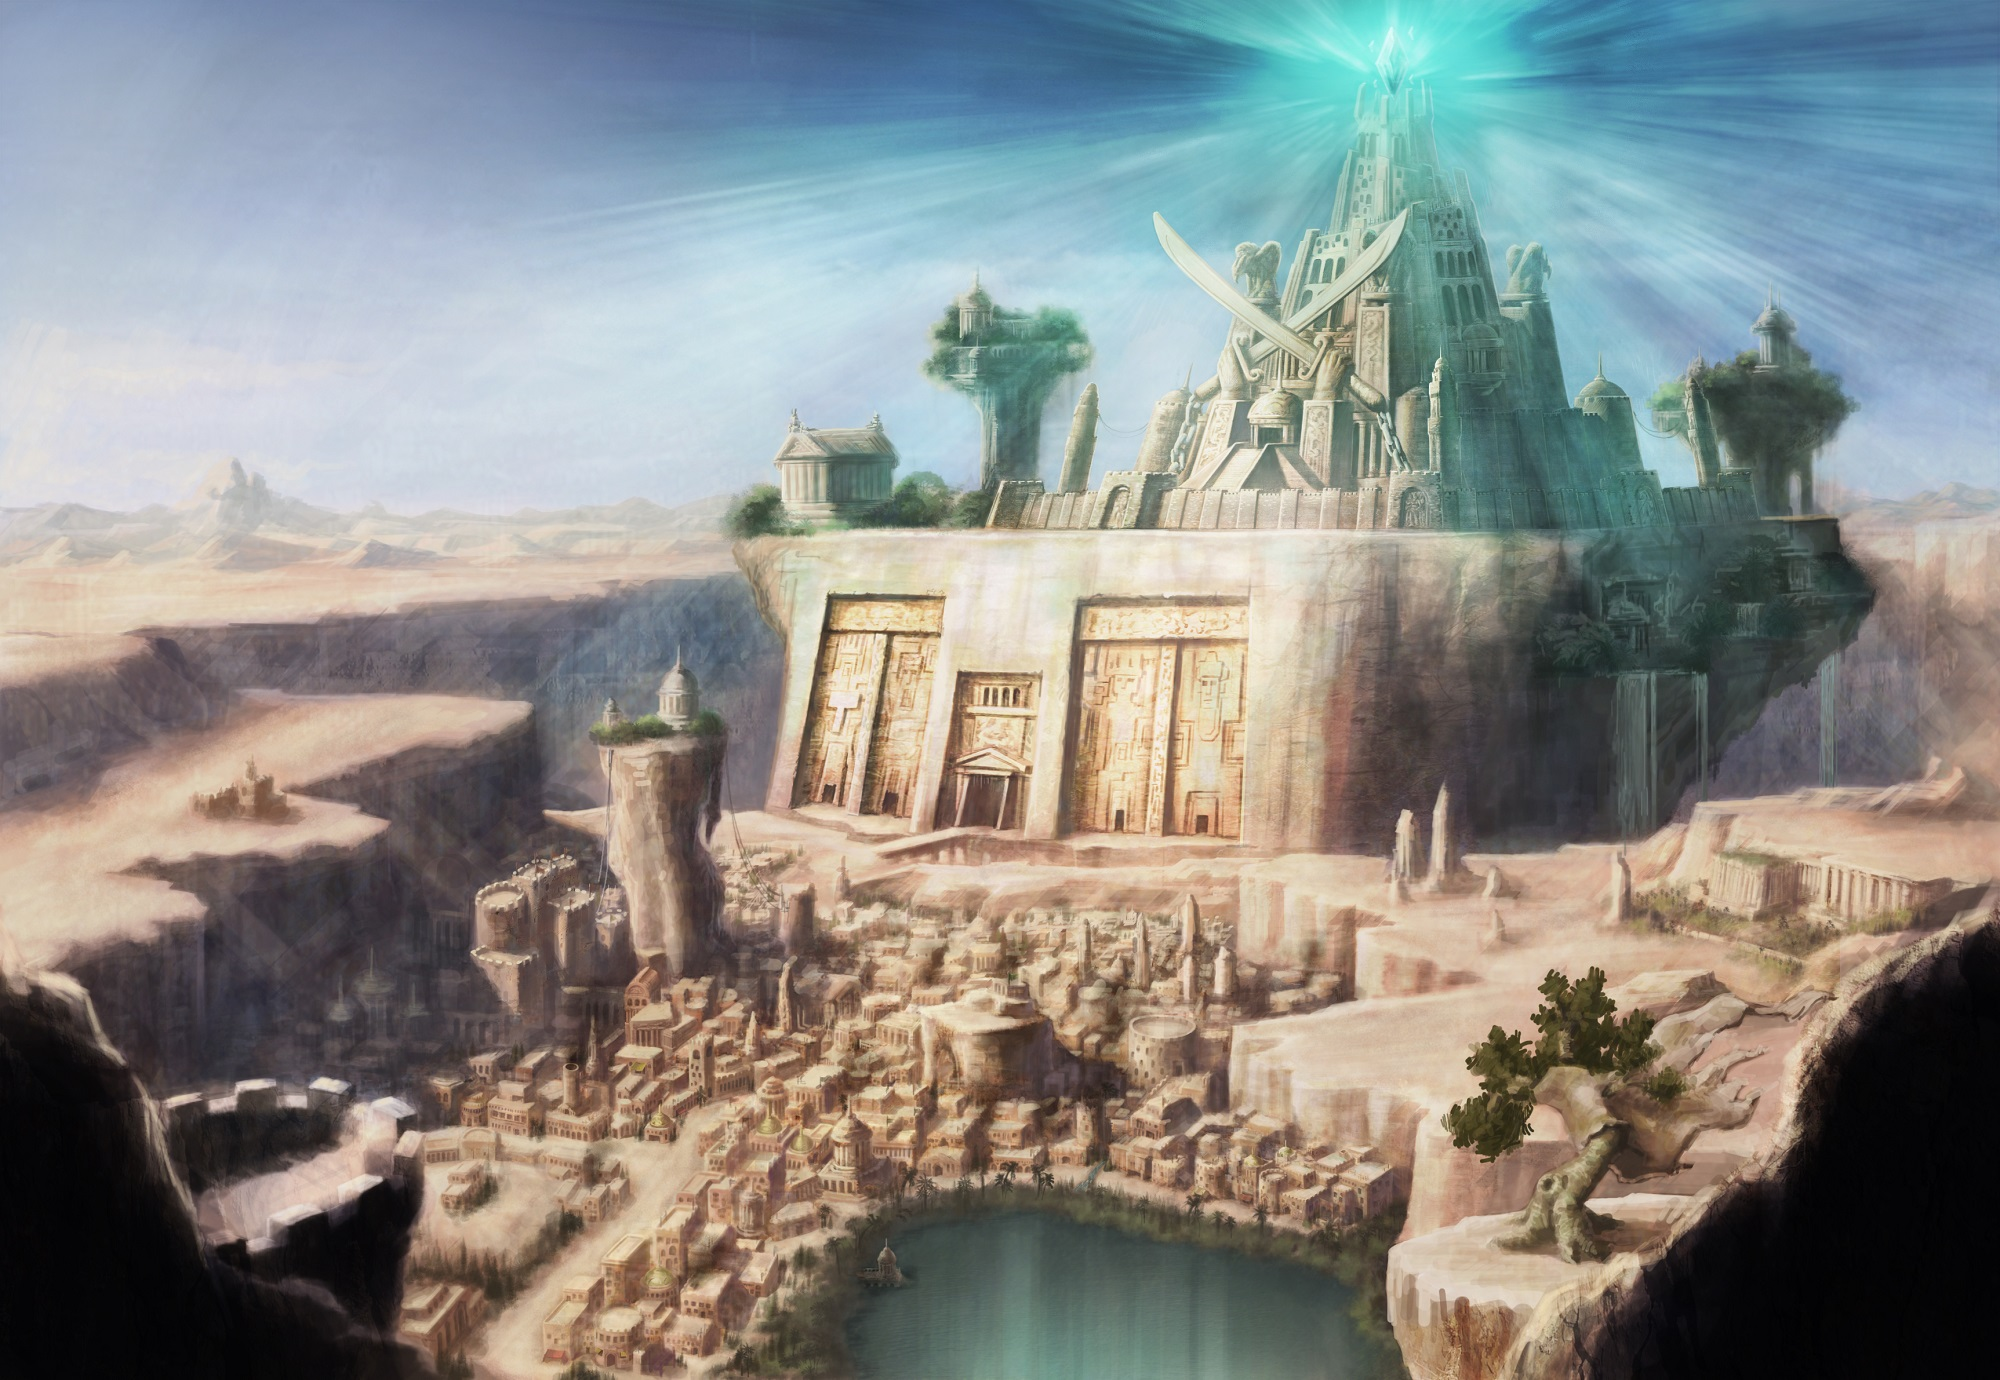 An artists rendering of a lost, mythological city. Shutterstock.